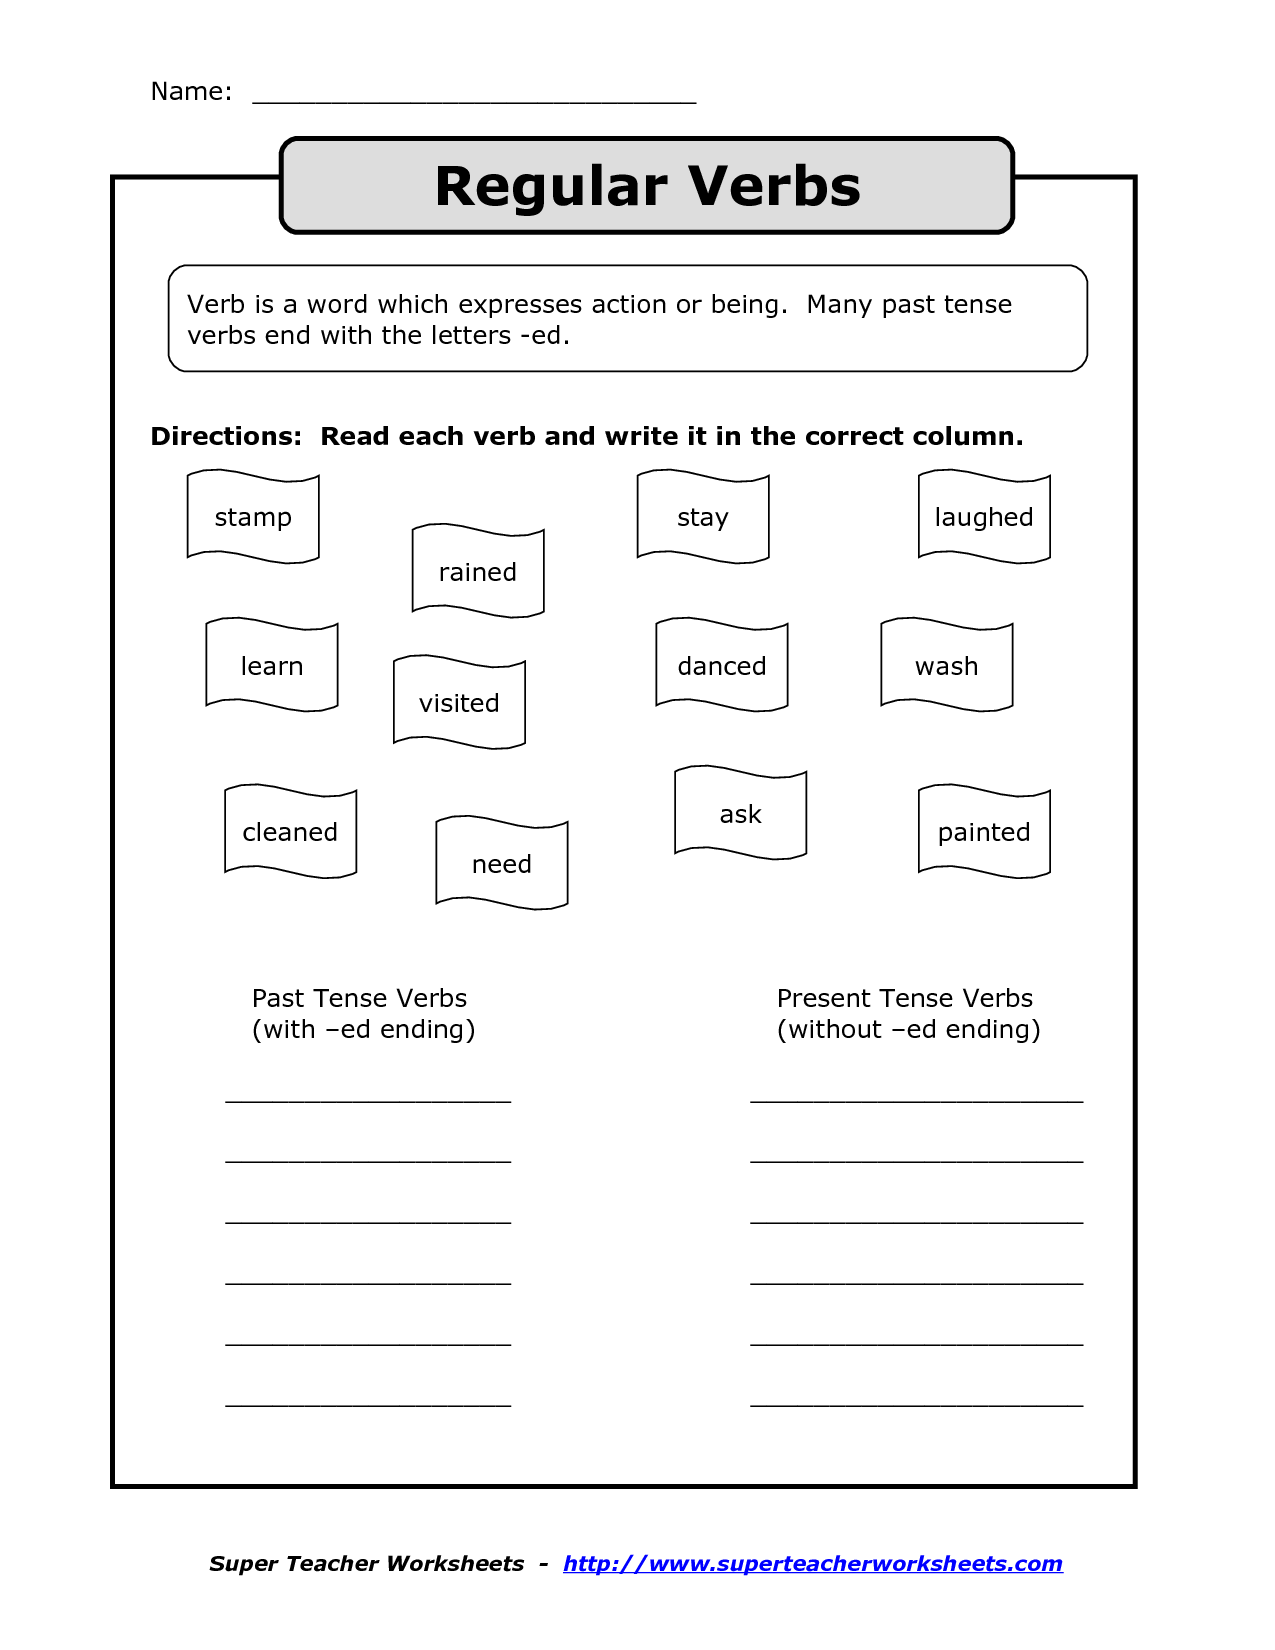 Worksheet With Past Tense Verbs